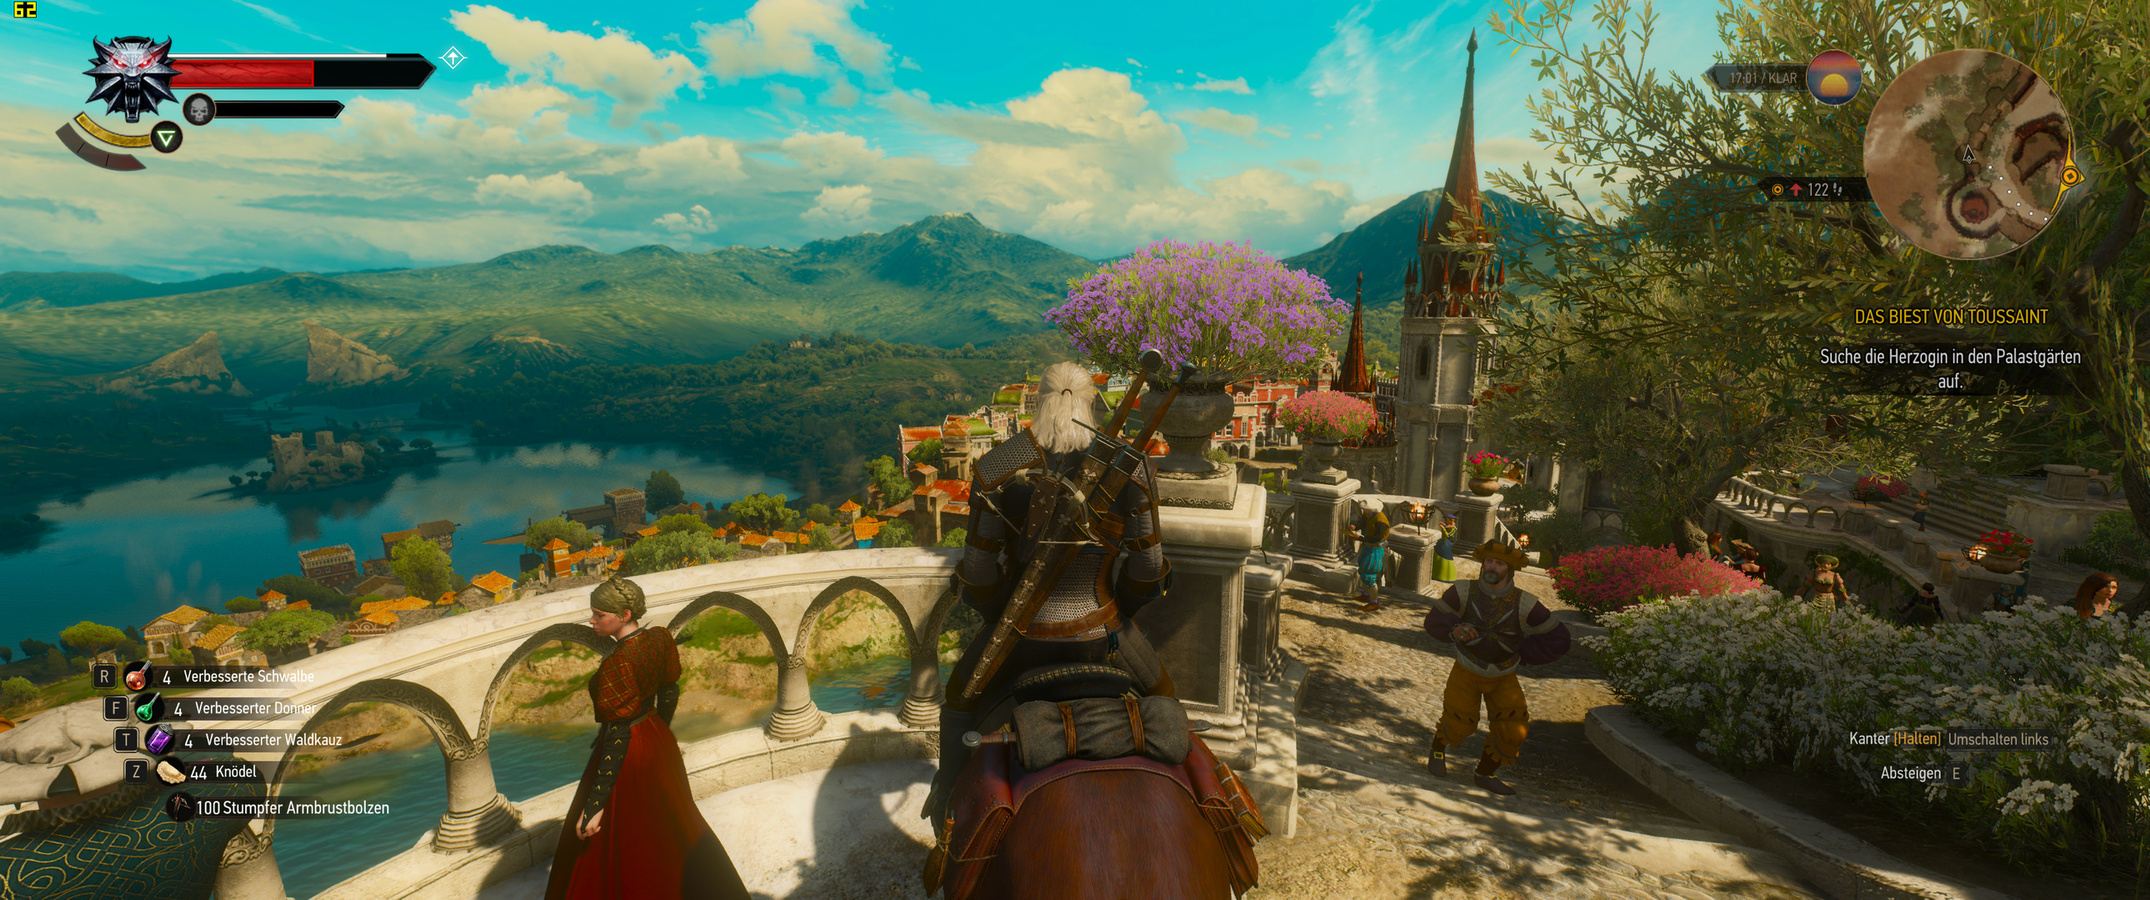 Witcher-3-BundW-21-9-pcgh